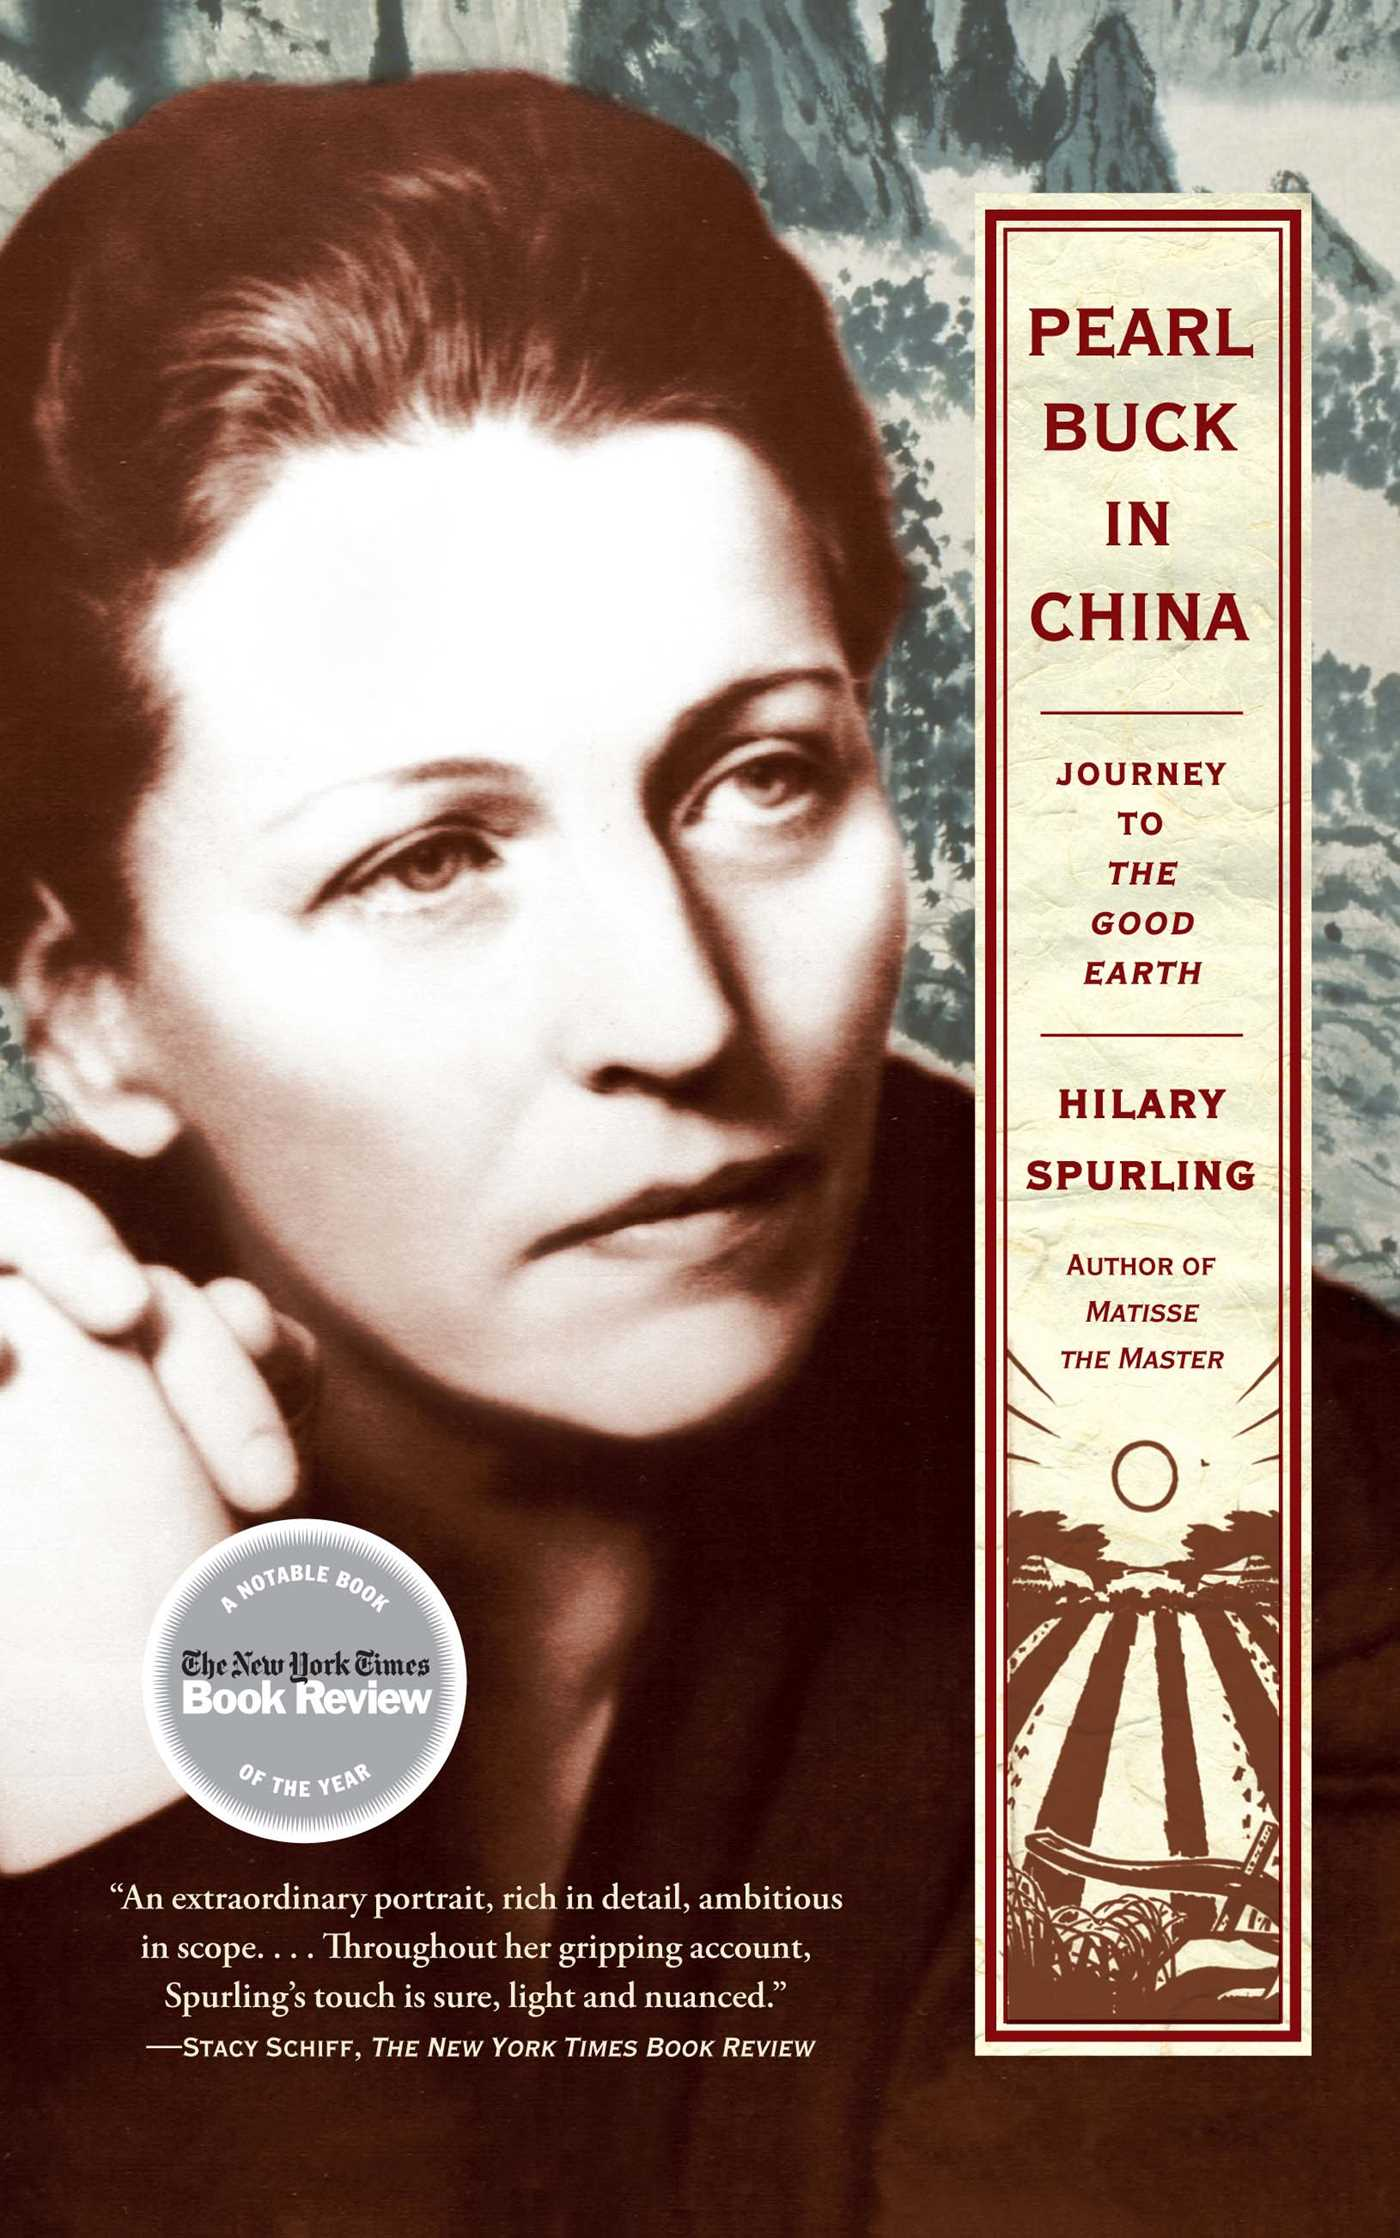 Pearl-buck-in-china-9781439180440_hr